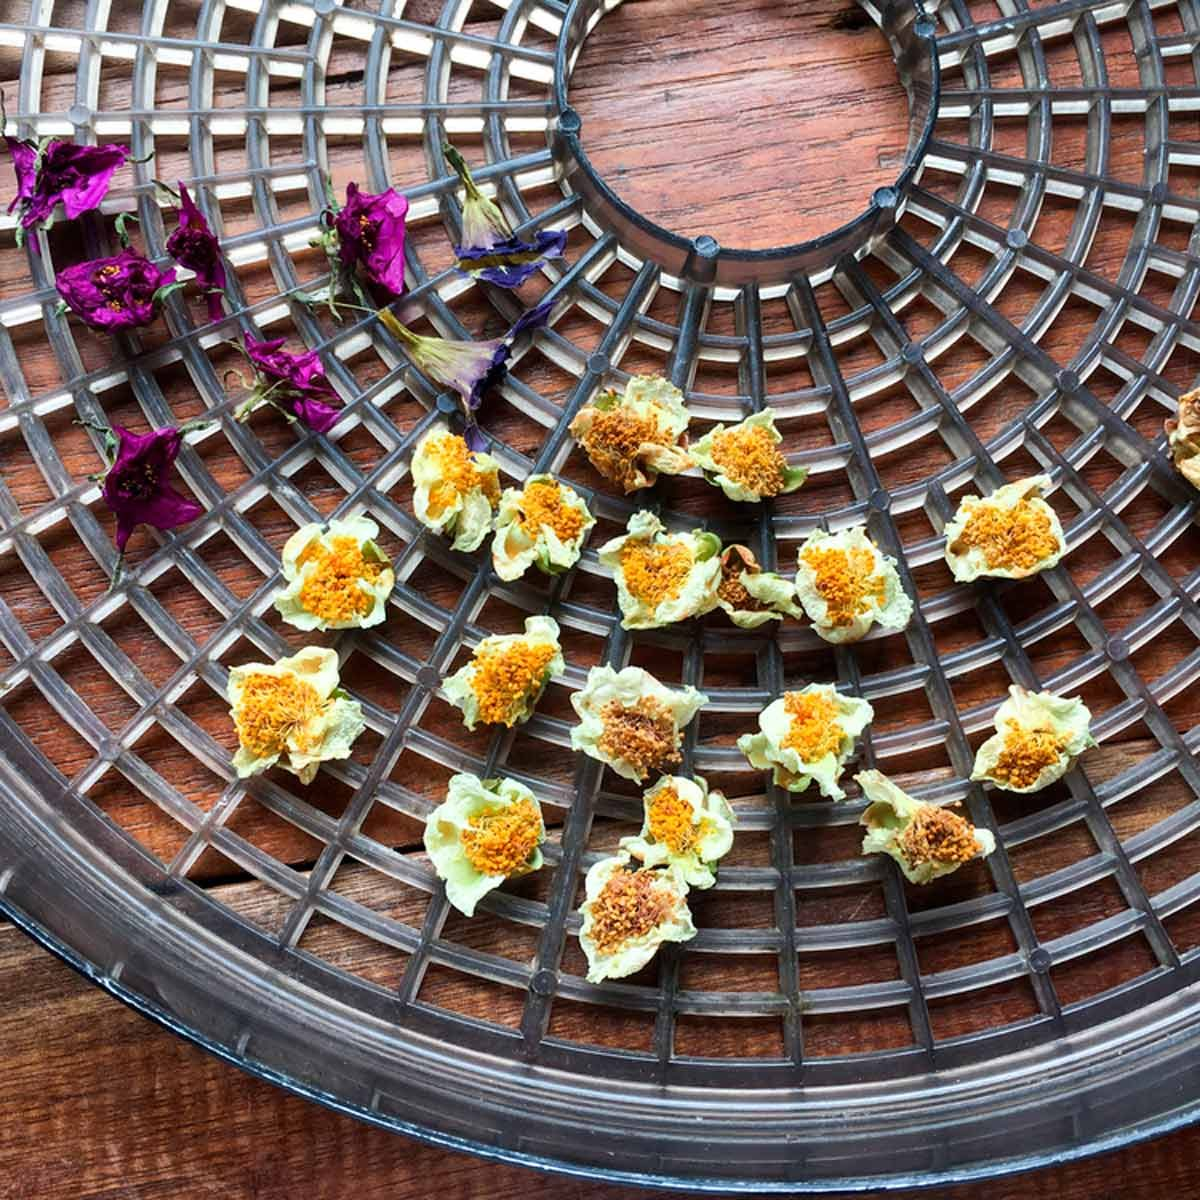 10 Unusual Ways To Use Your Food Dehydrator Family Handyman The Family Handyman